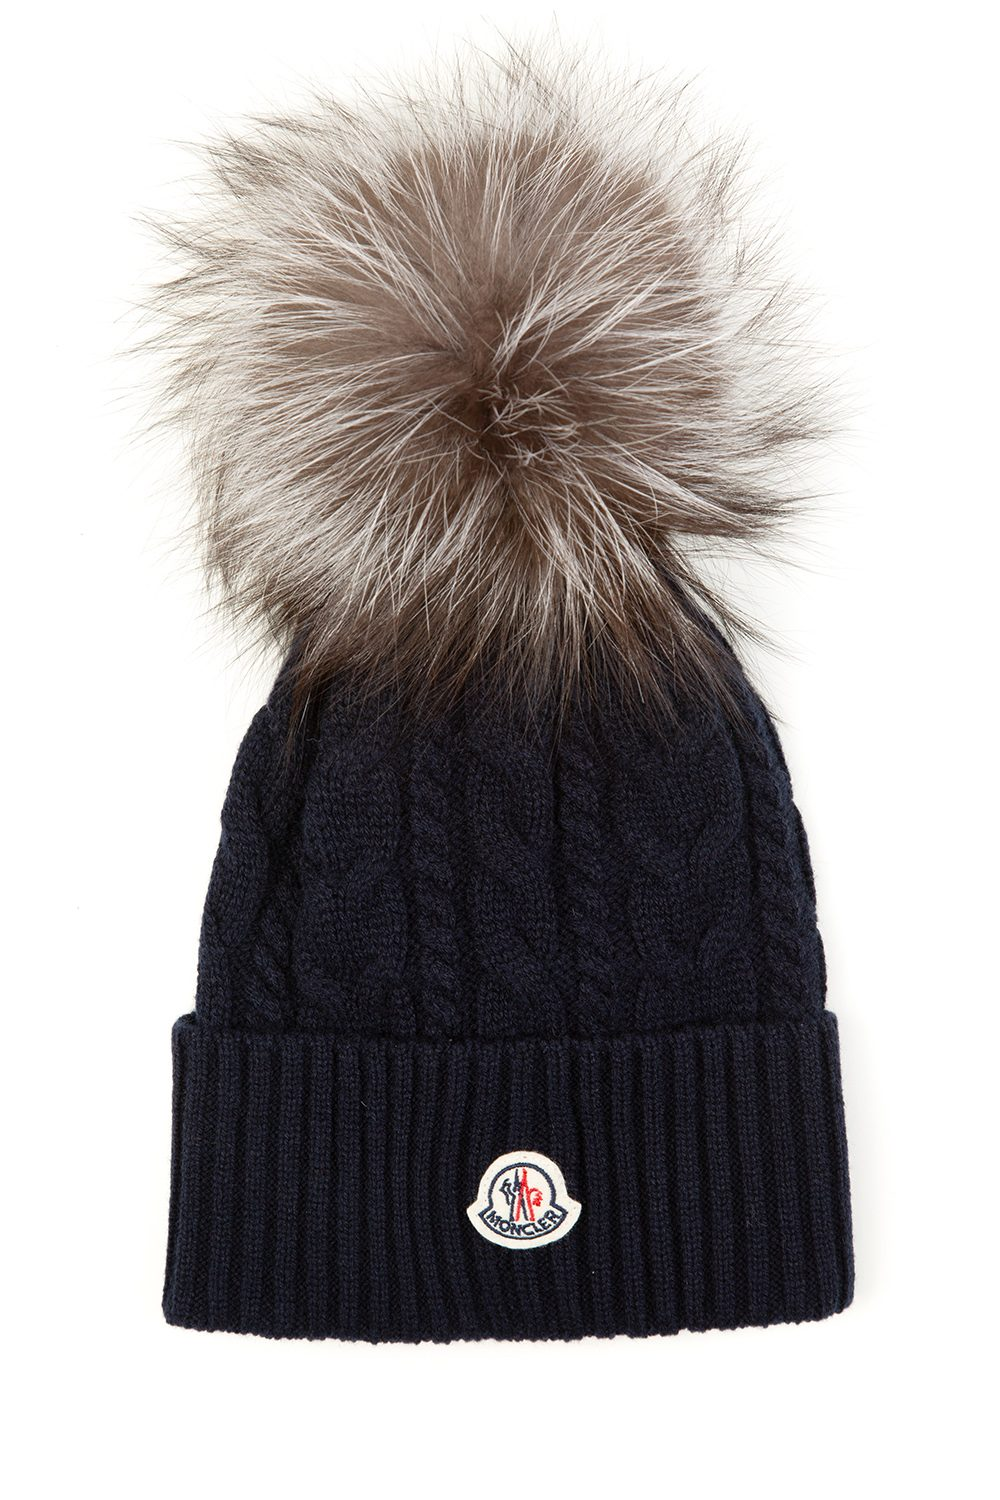 Moncler Women s Cable Knit Beanie Hat Navy - Linea Fashion b0e760c43eb2